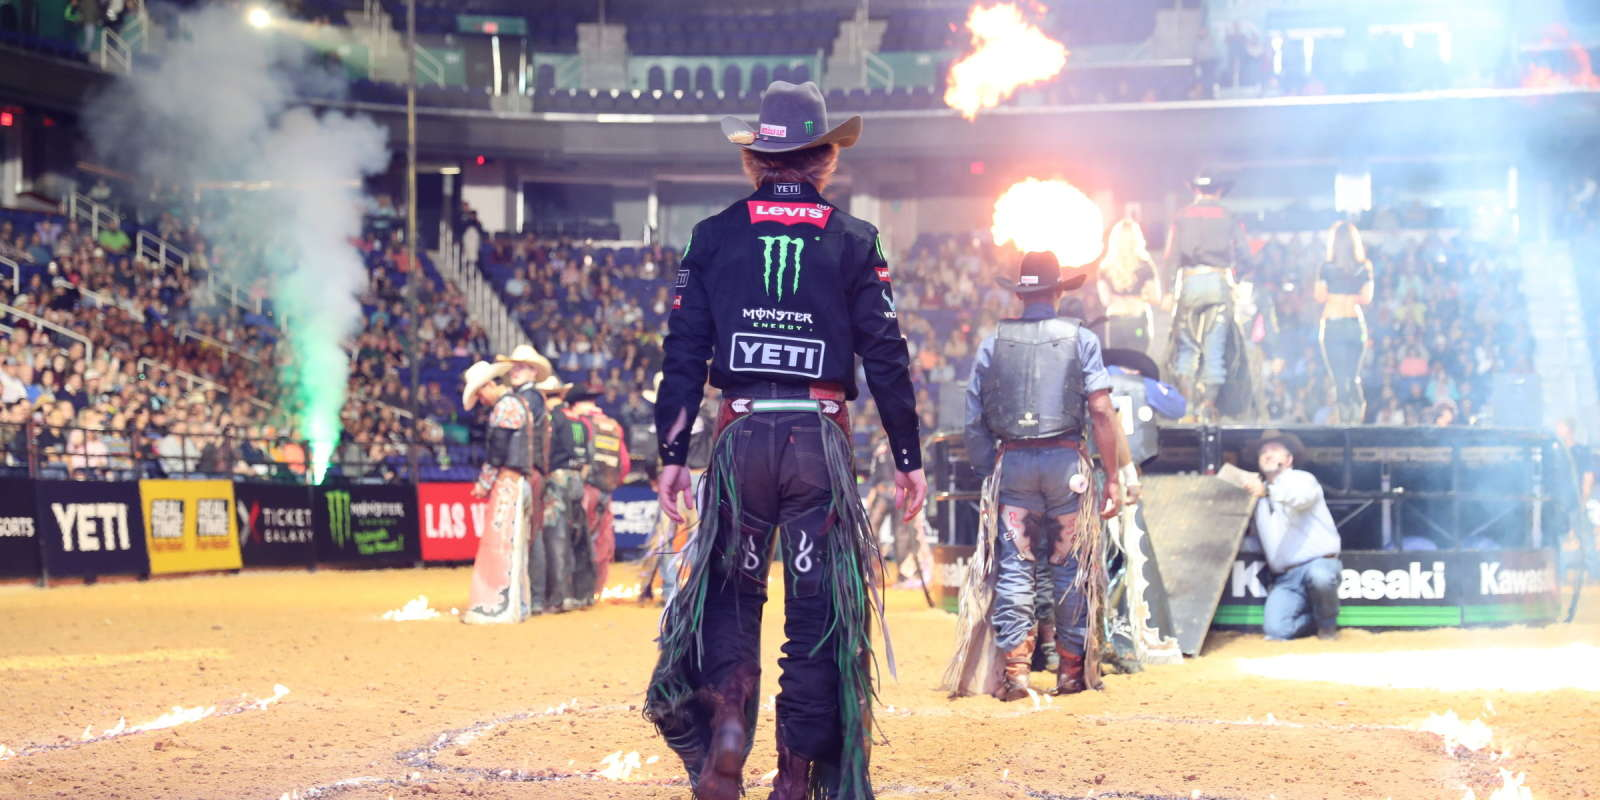 Image from the 2018 PBR event in Greensboro, North Carolina